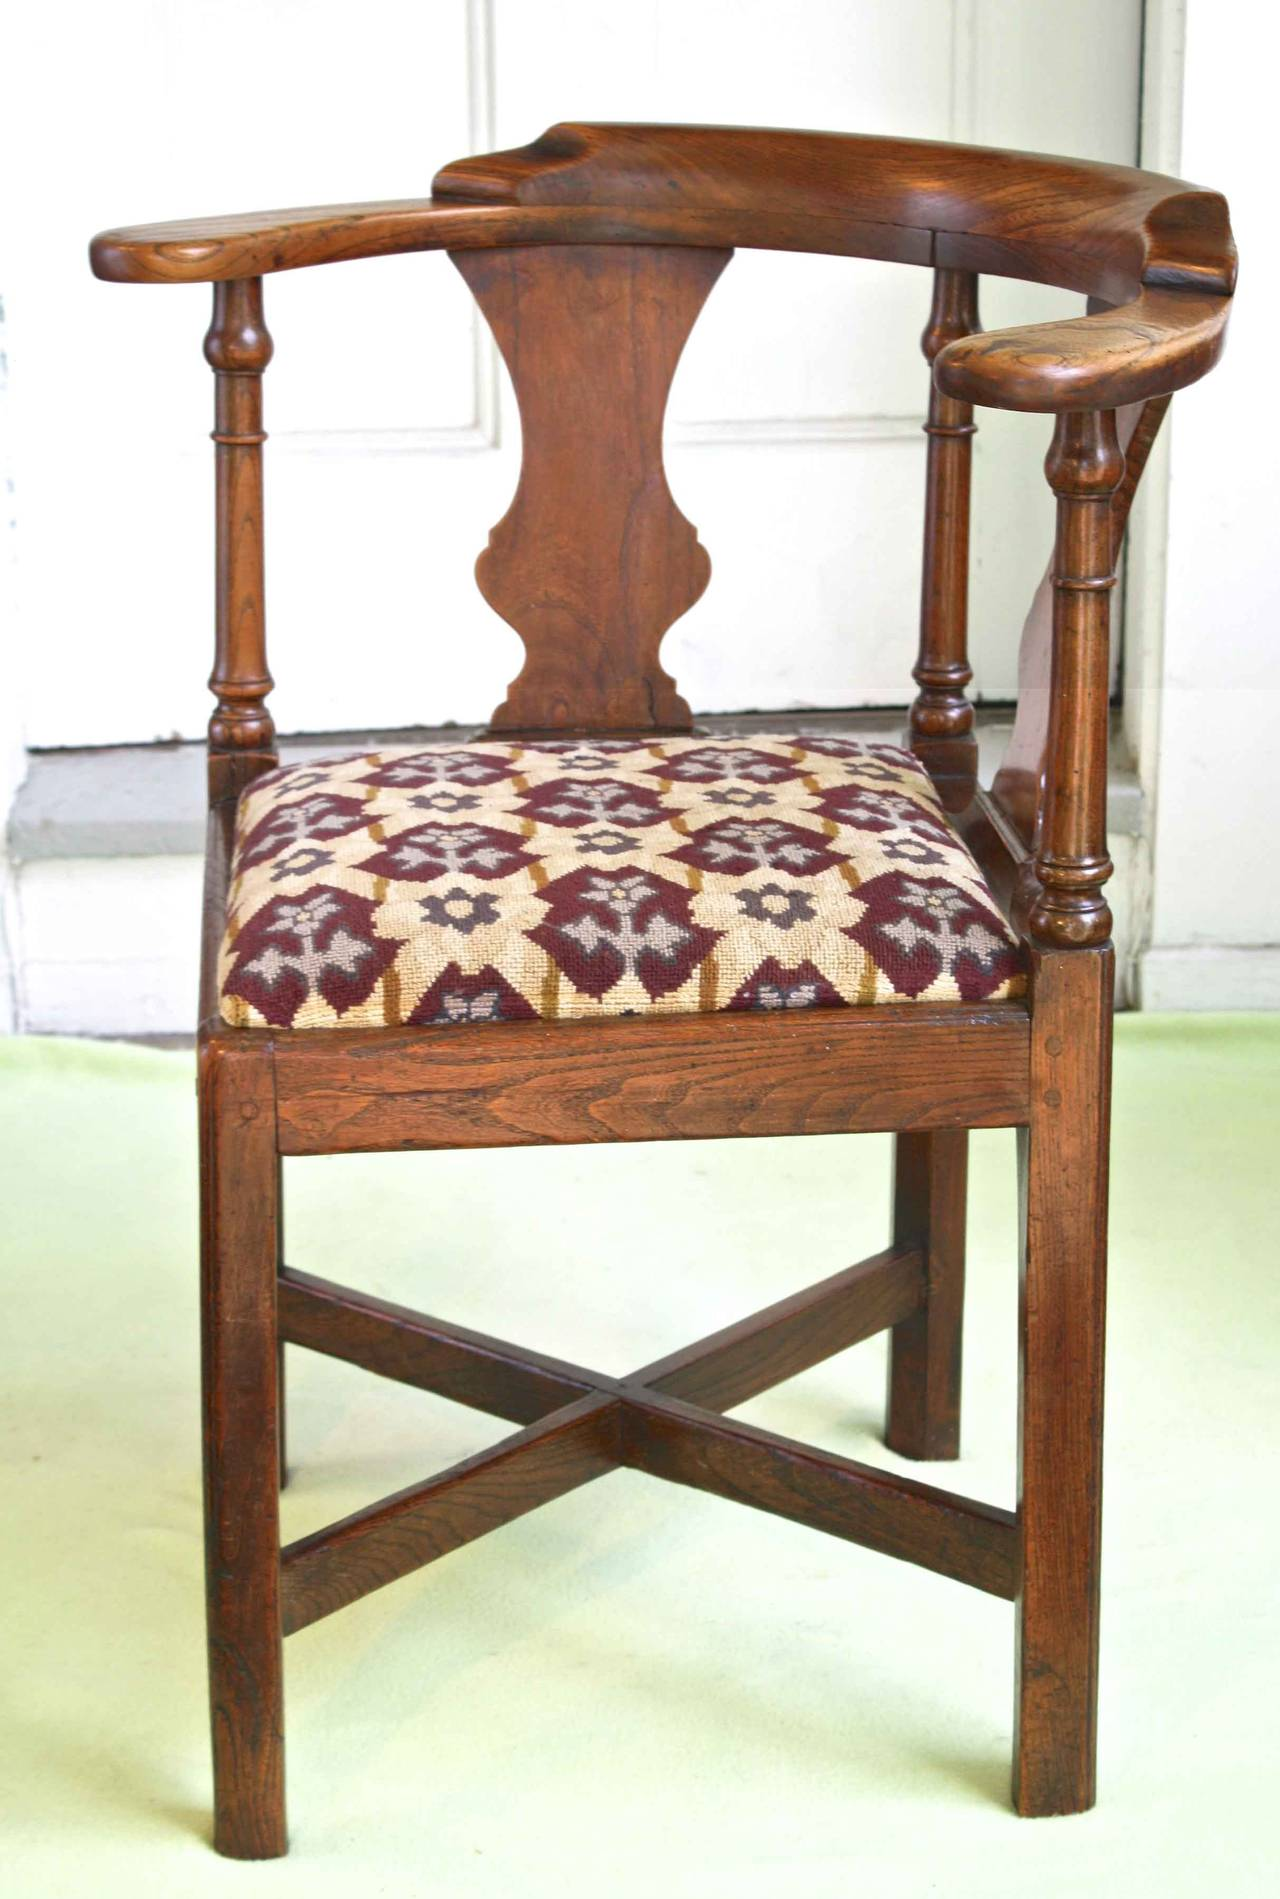 An early George II period elmwood 'country house' corner chair; with urn splats, flat paddle arms, and plain cross-stretchers. Striking geometric stylized floral needlepoint covered slip seat. Likely of Yorkshire origin.